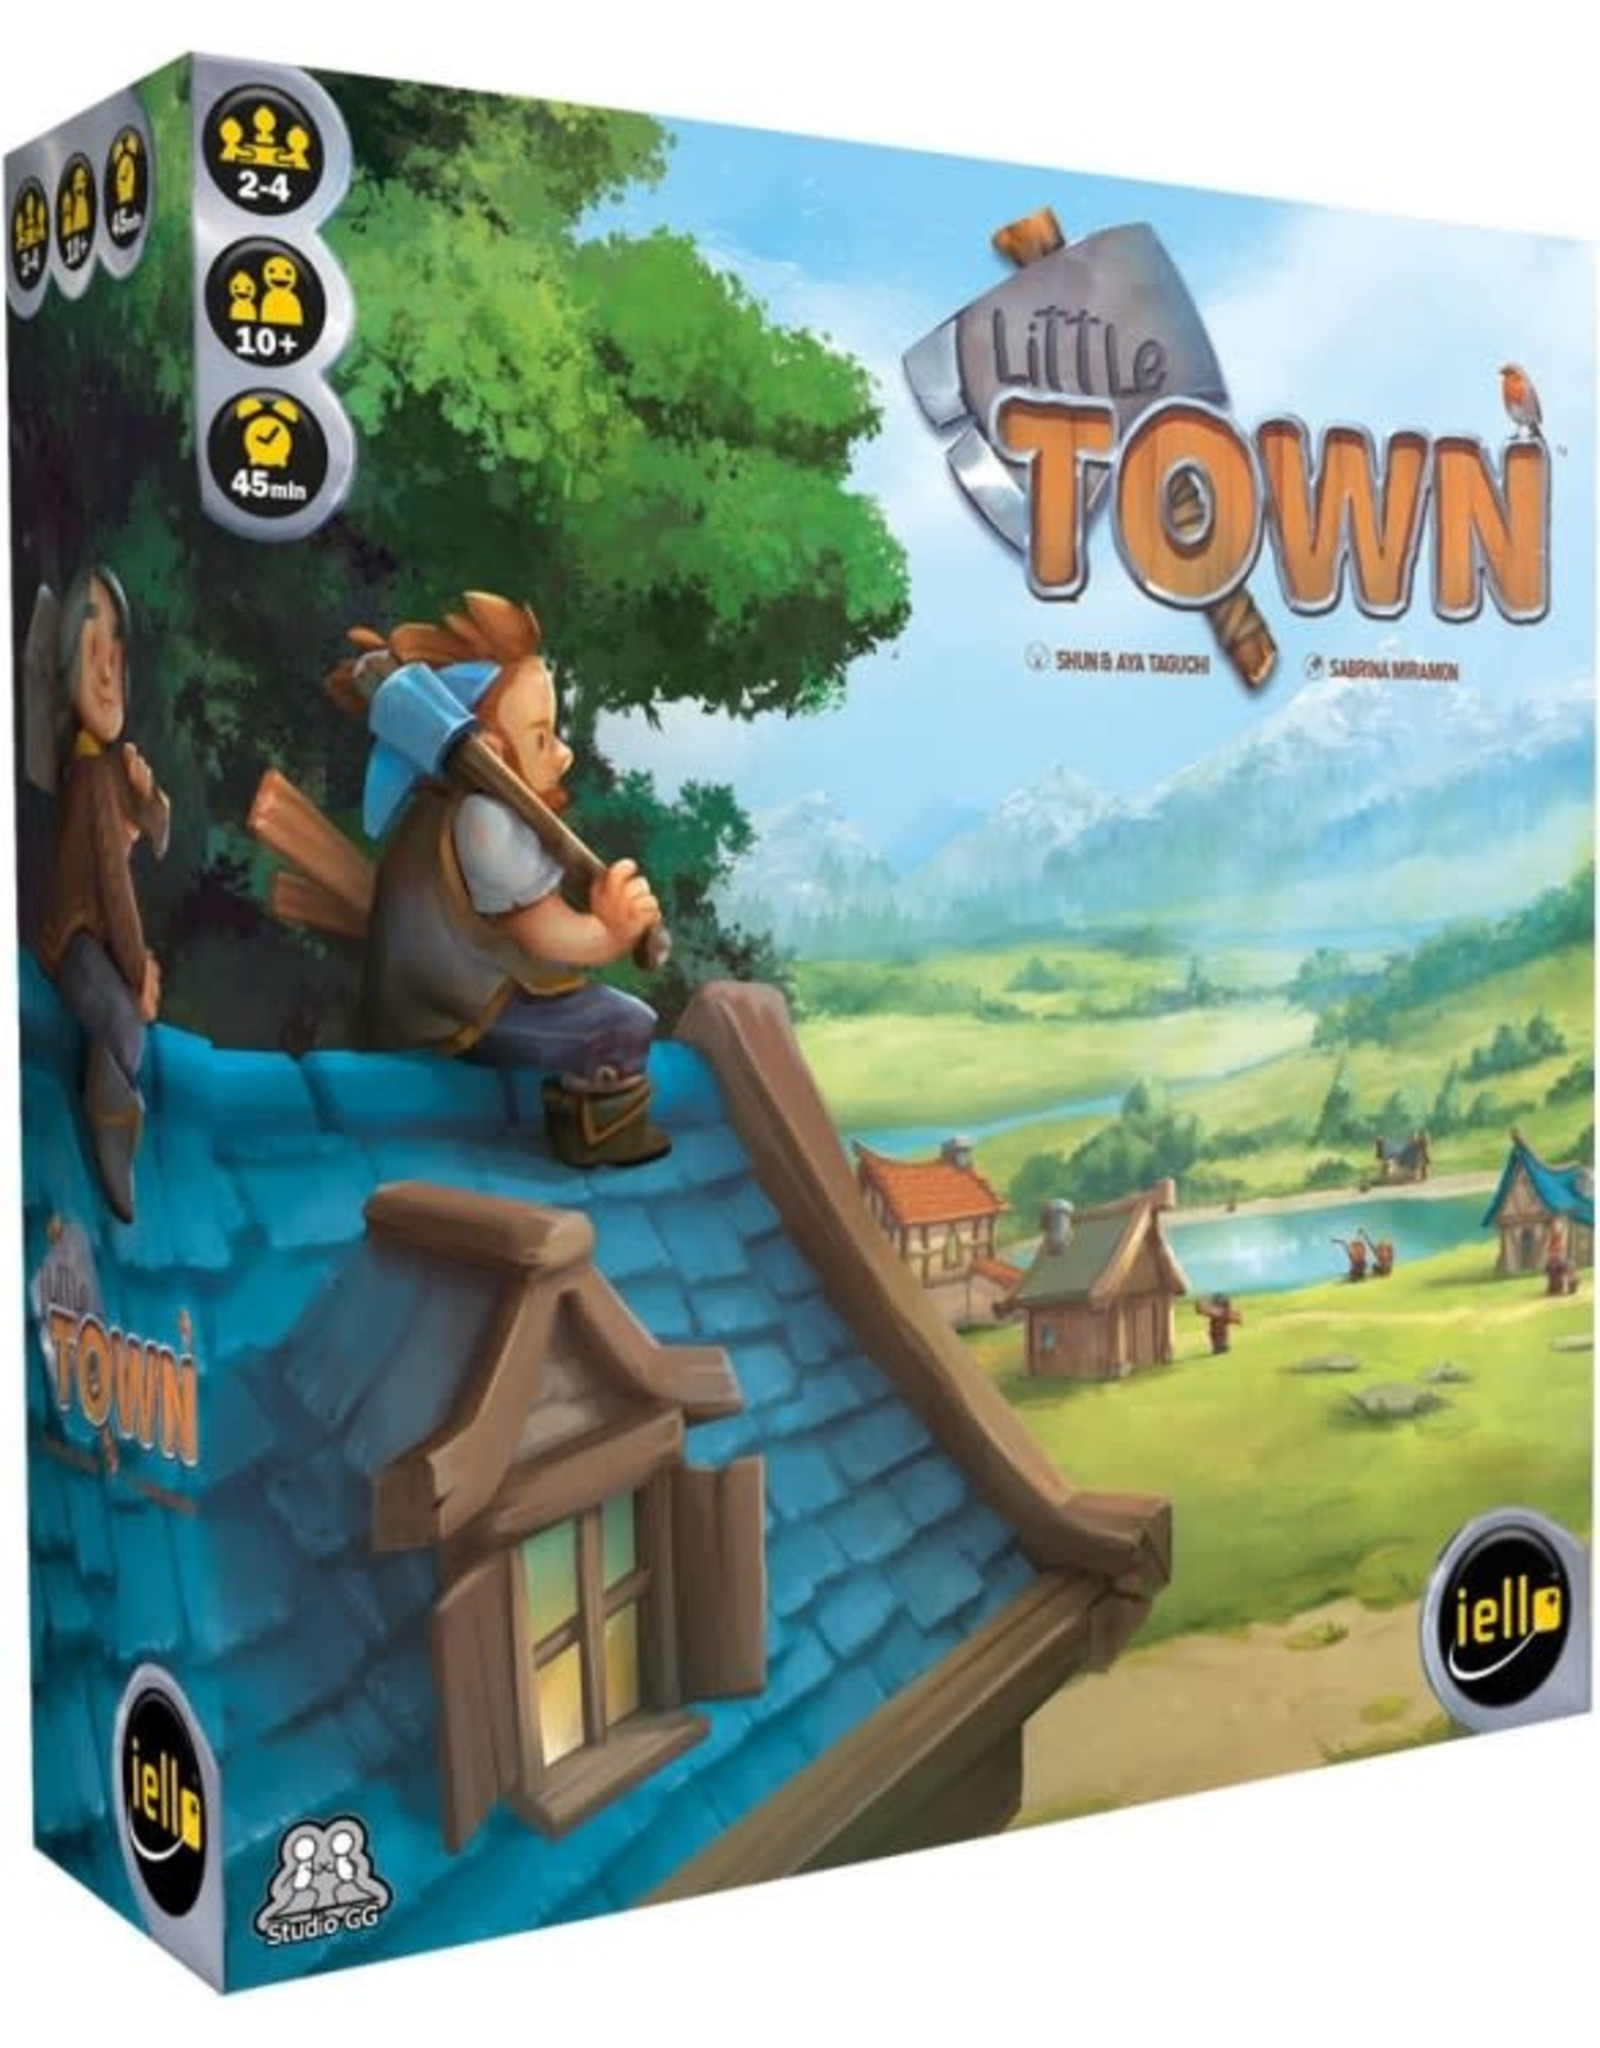 Iello Little Town